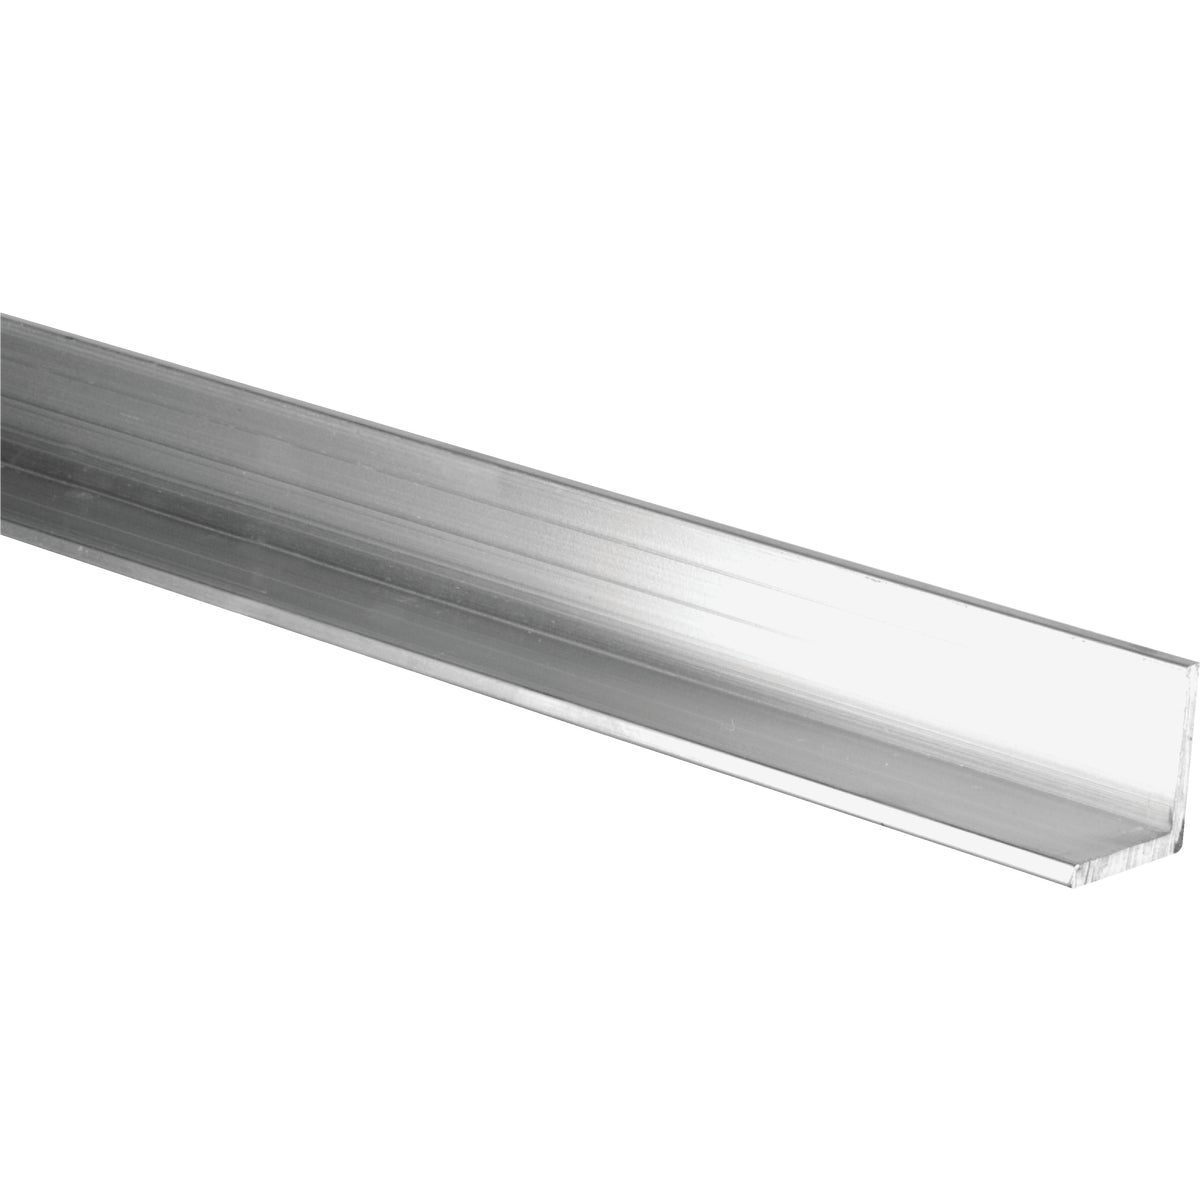 1/16X2X4' ALUM ANGLE - N342022 by National Mfg Co